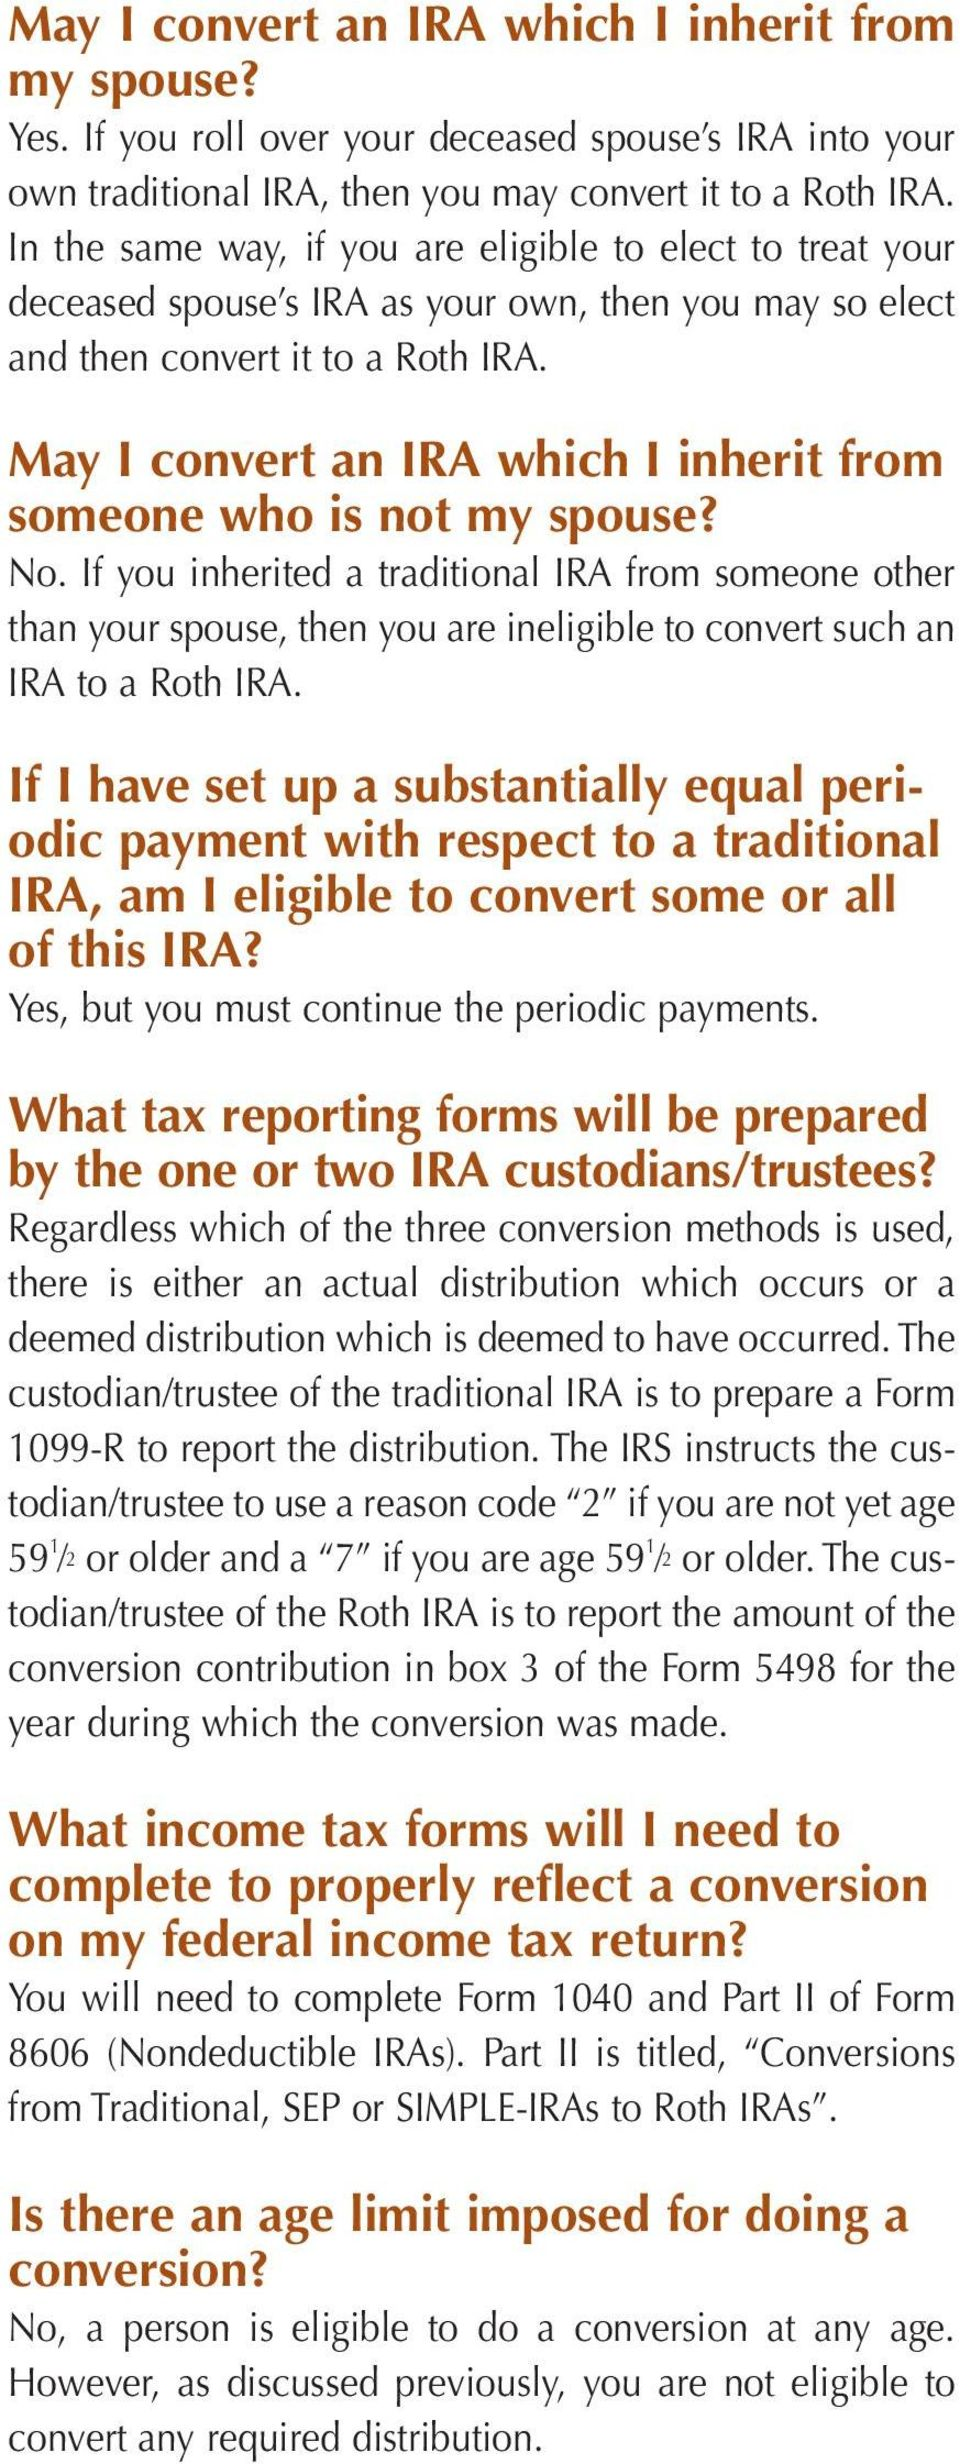 May I convert an IRA which I inherit from someone who is not my spouse? No.